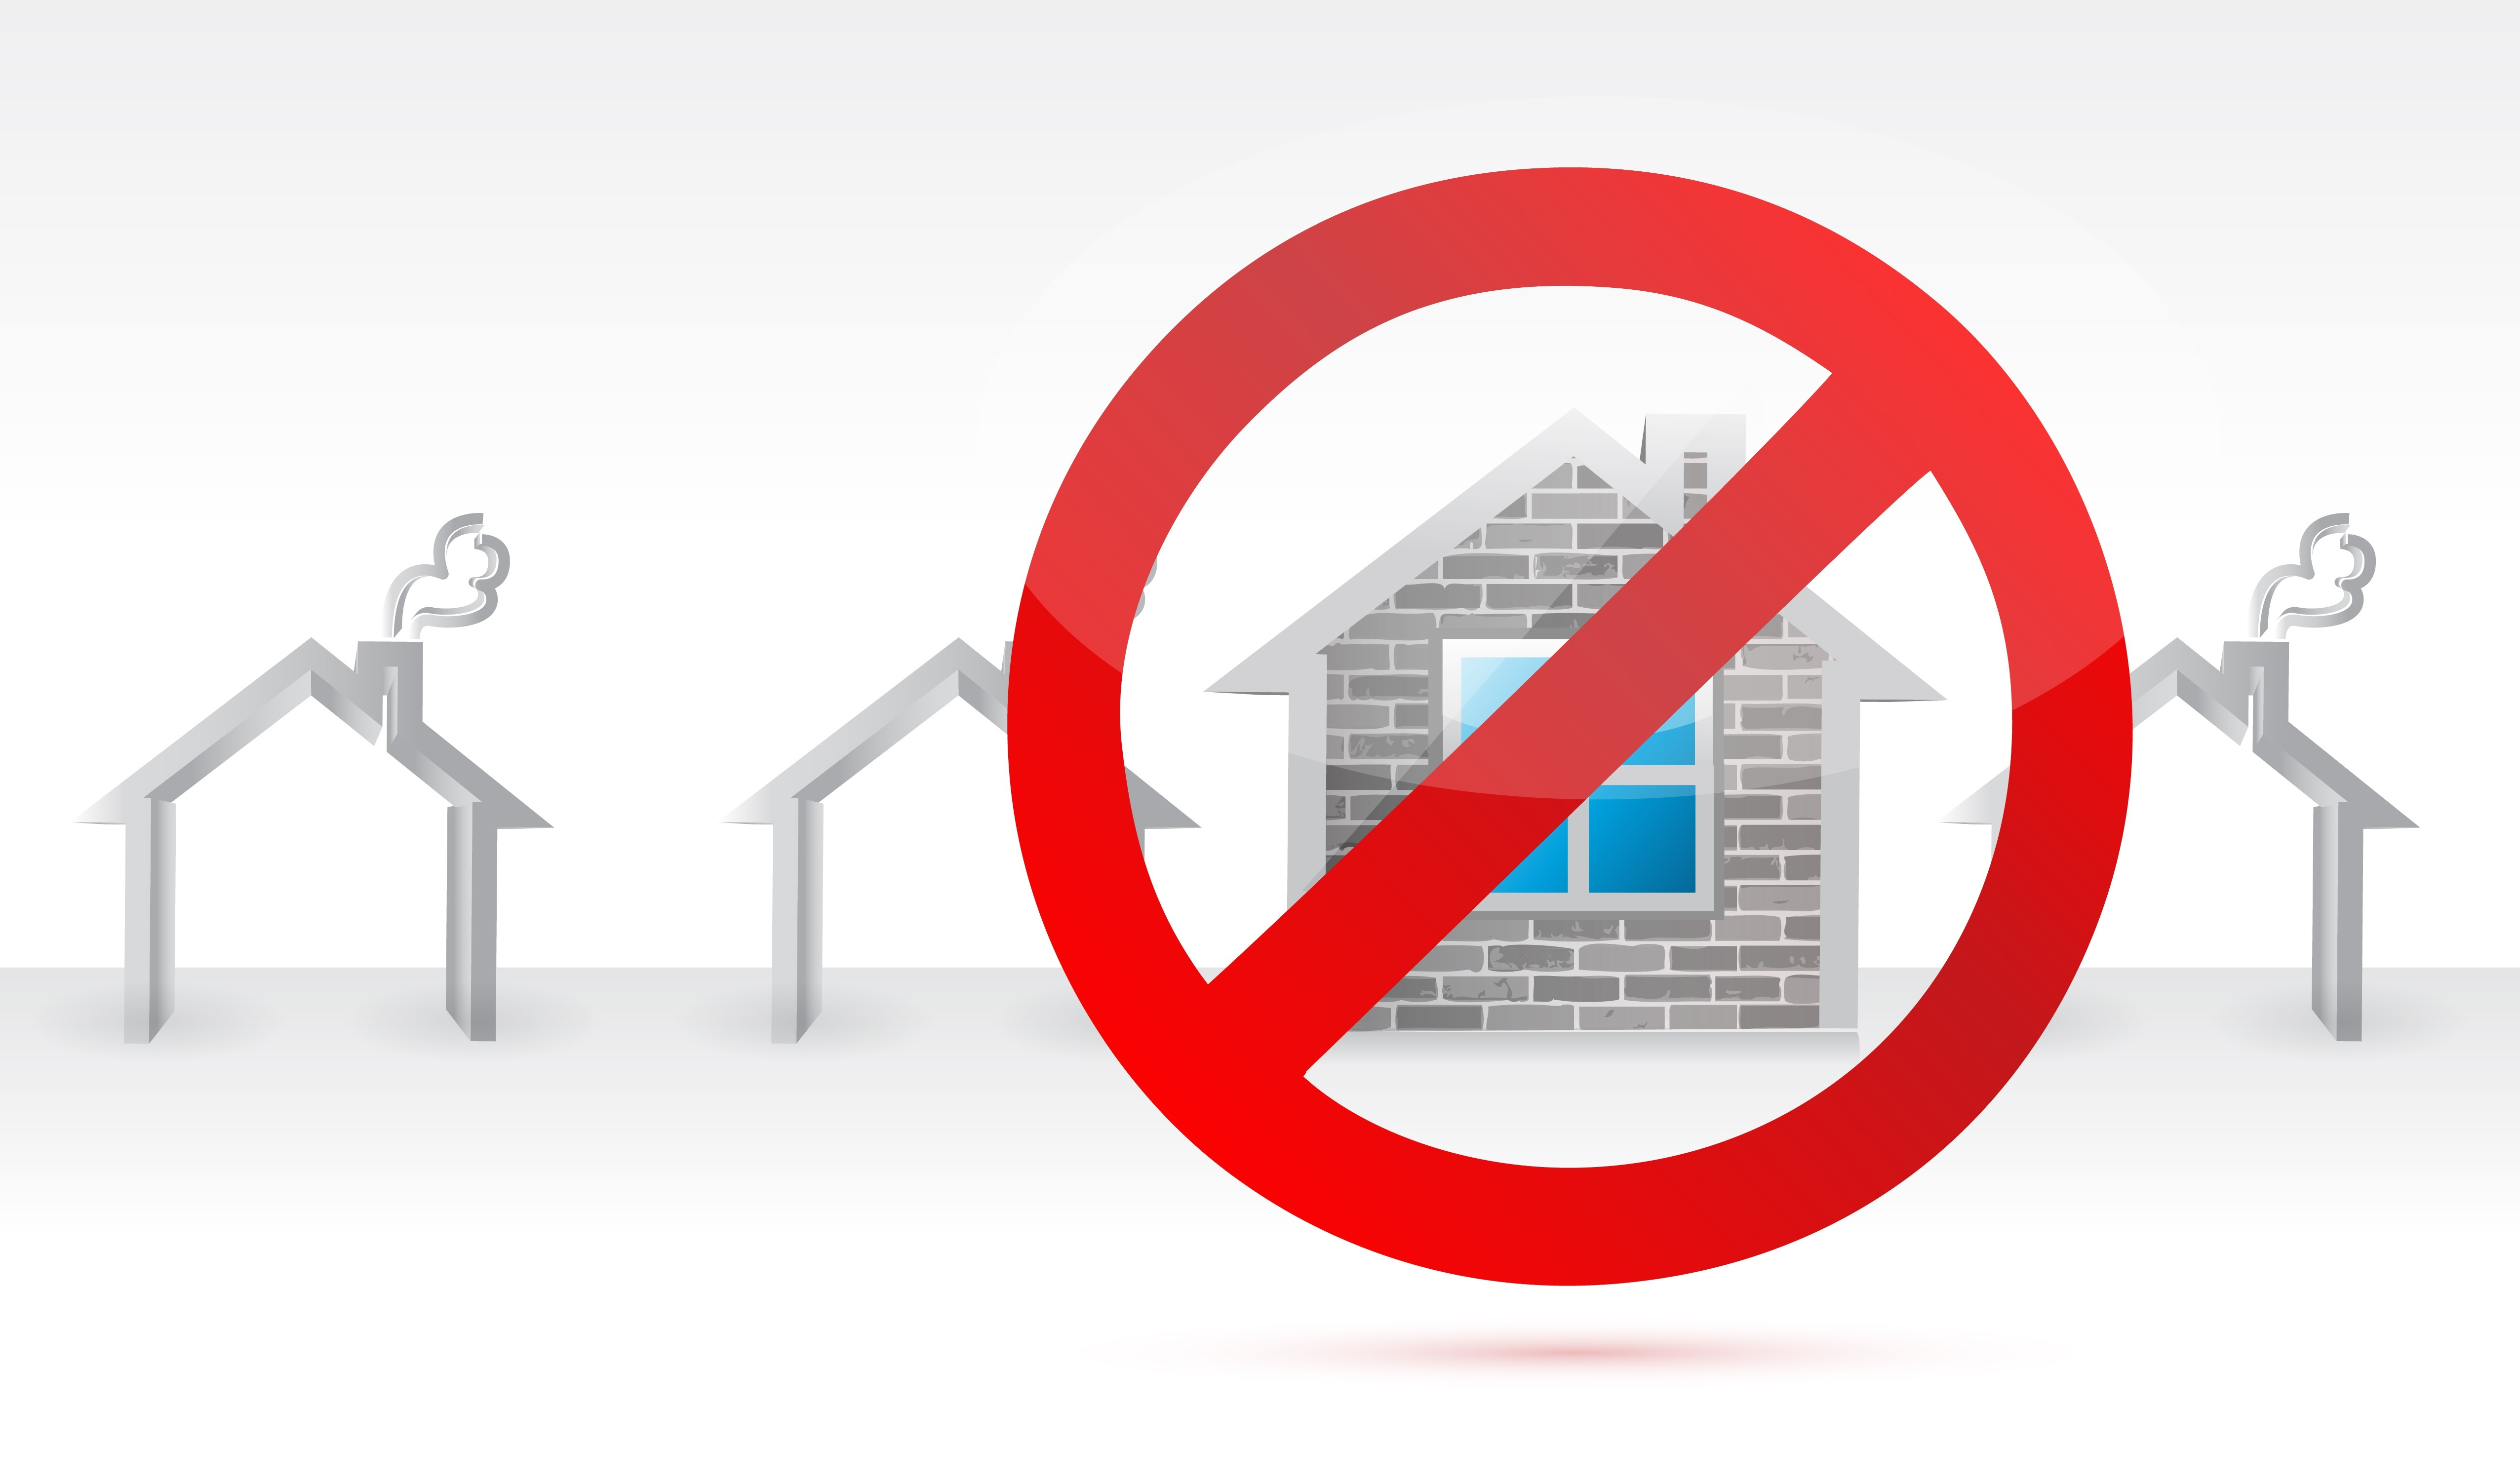 Rookie Mistakes: Don't Make These 4 First-time Home-buyer Mistakes